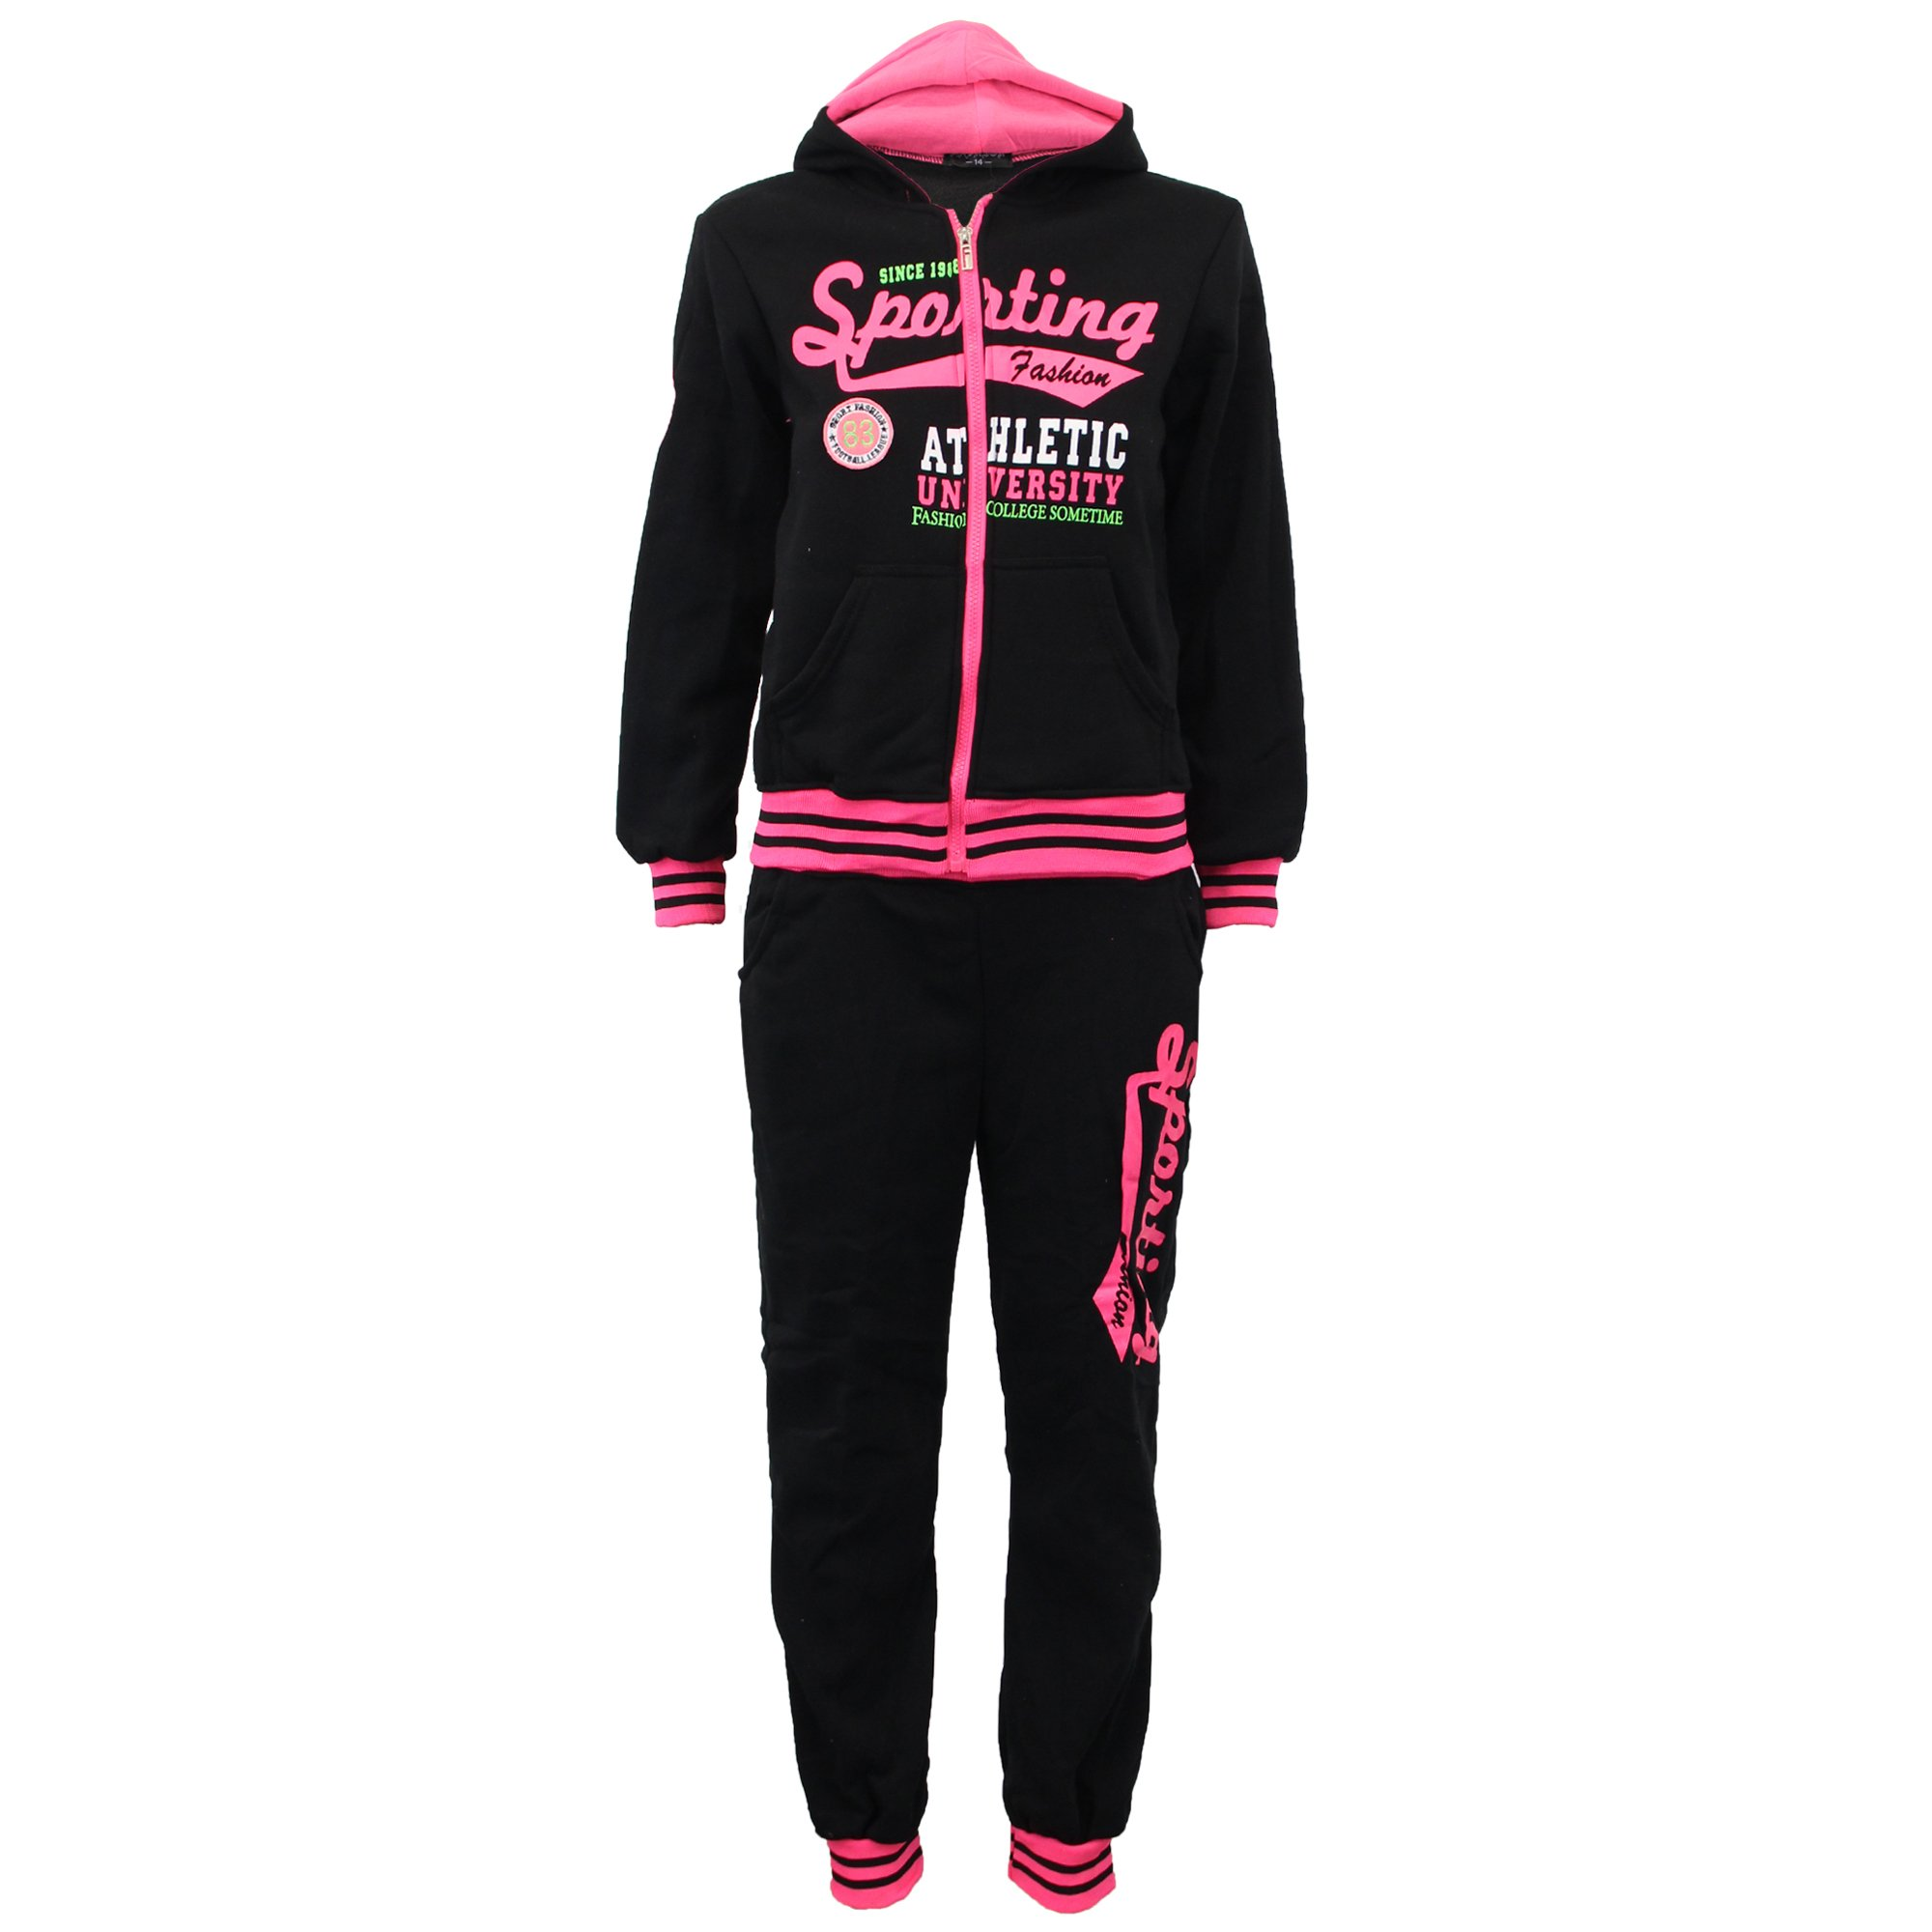 Boys' Tracksuit C73 Black/Fuchsia Size 14 10/11 Years by Unknown (Image #1)